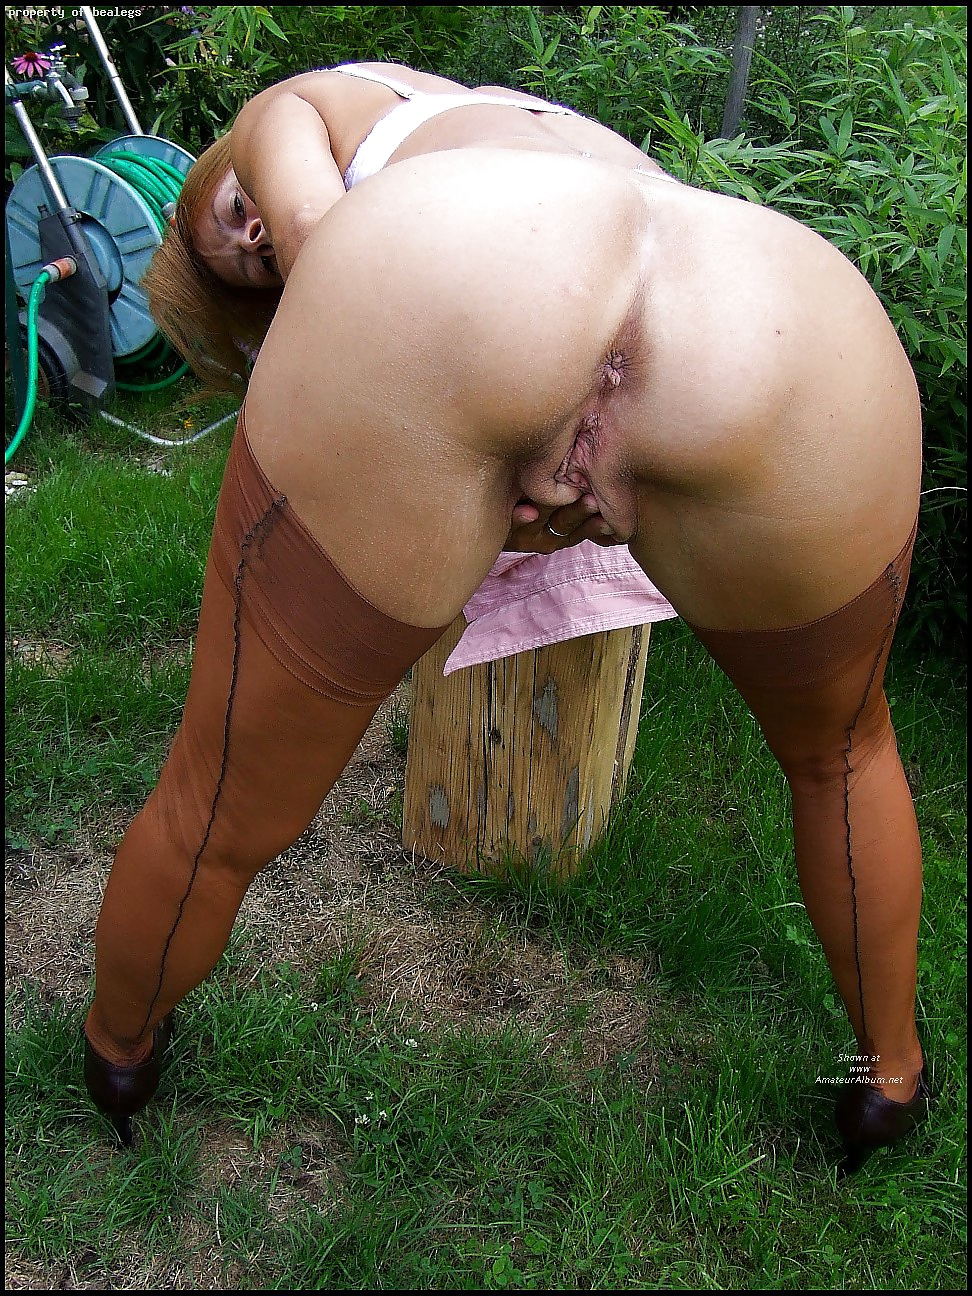 classic Asshole woman outdoor